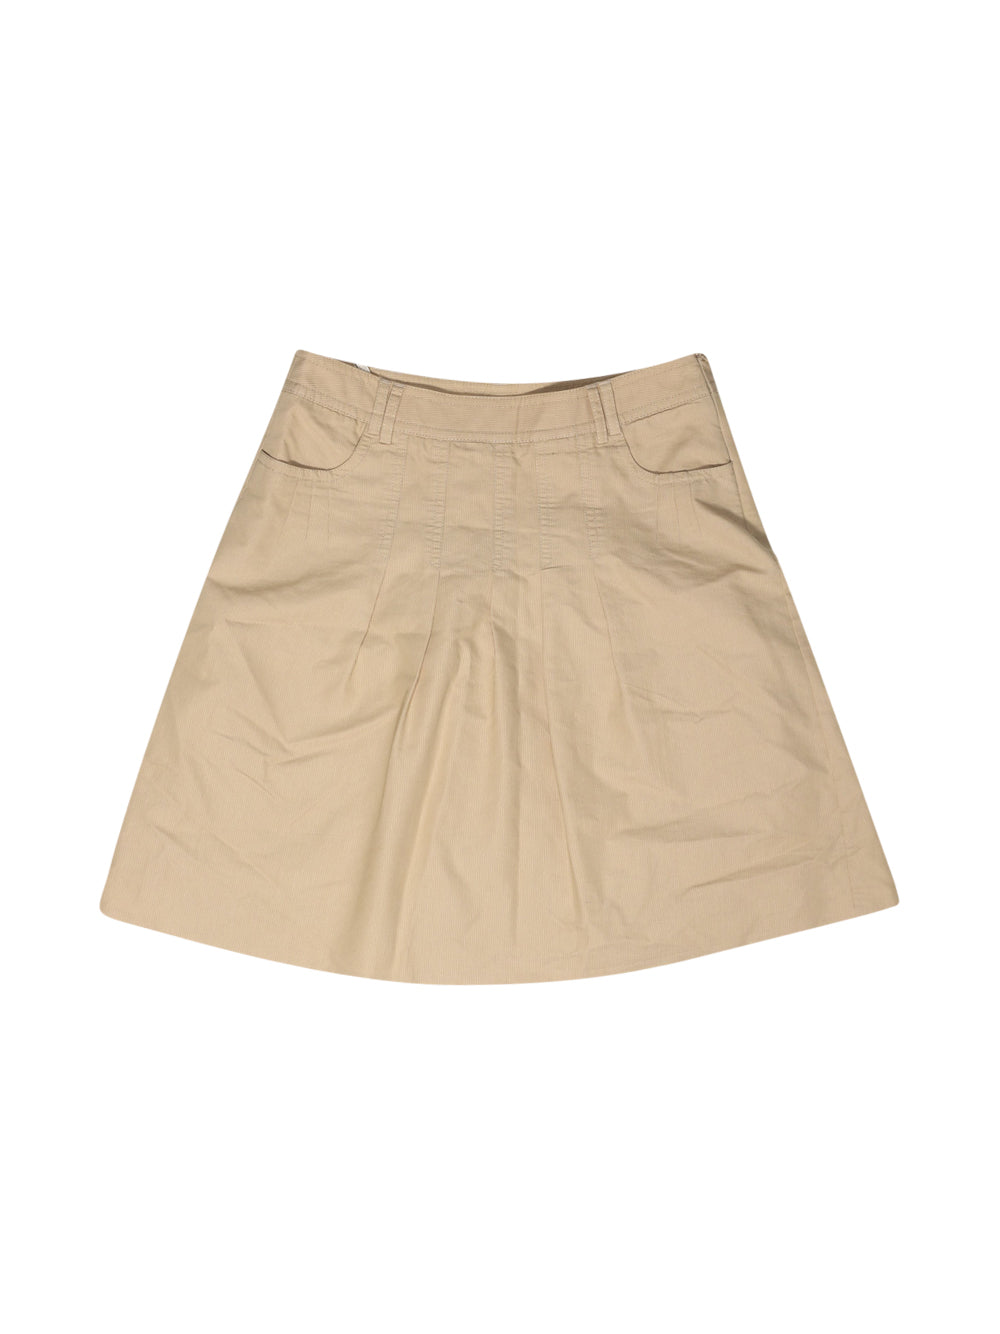 Front photo of Preloved Esprit Beige Woman's skirt - size 10/M